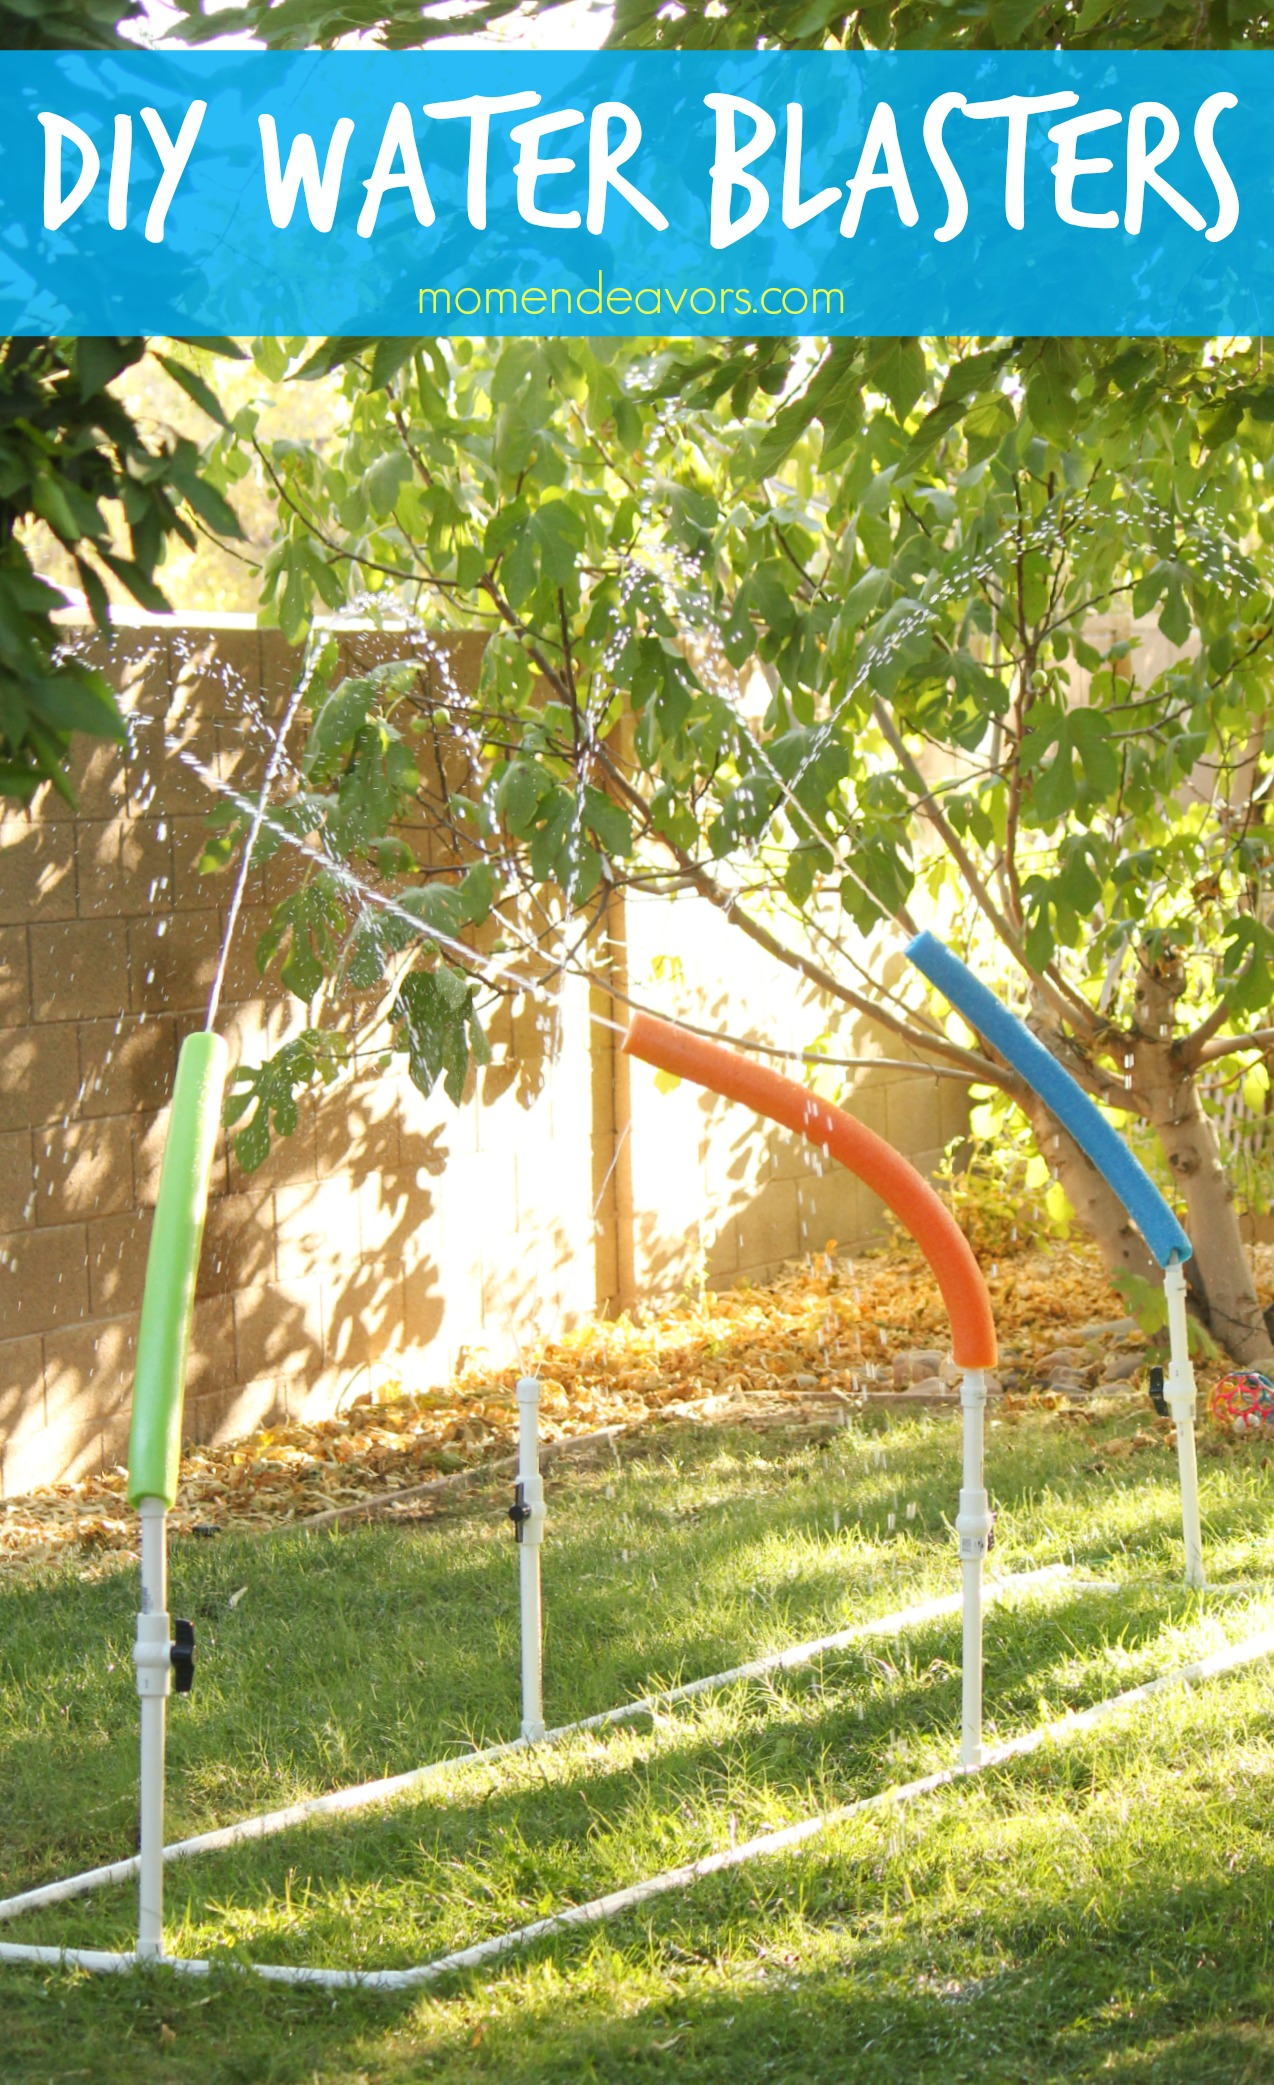 32 More Pool Noodle Activities Hacks and Crafts